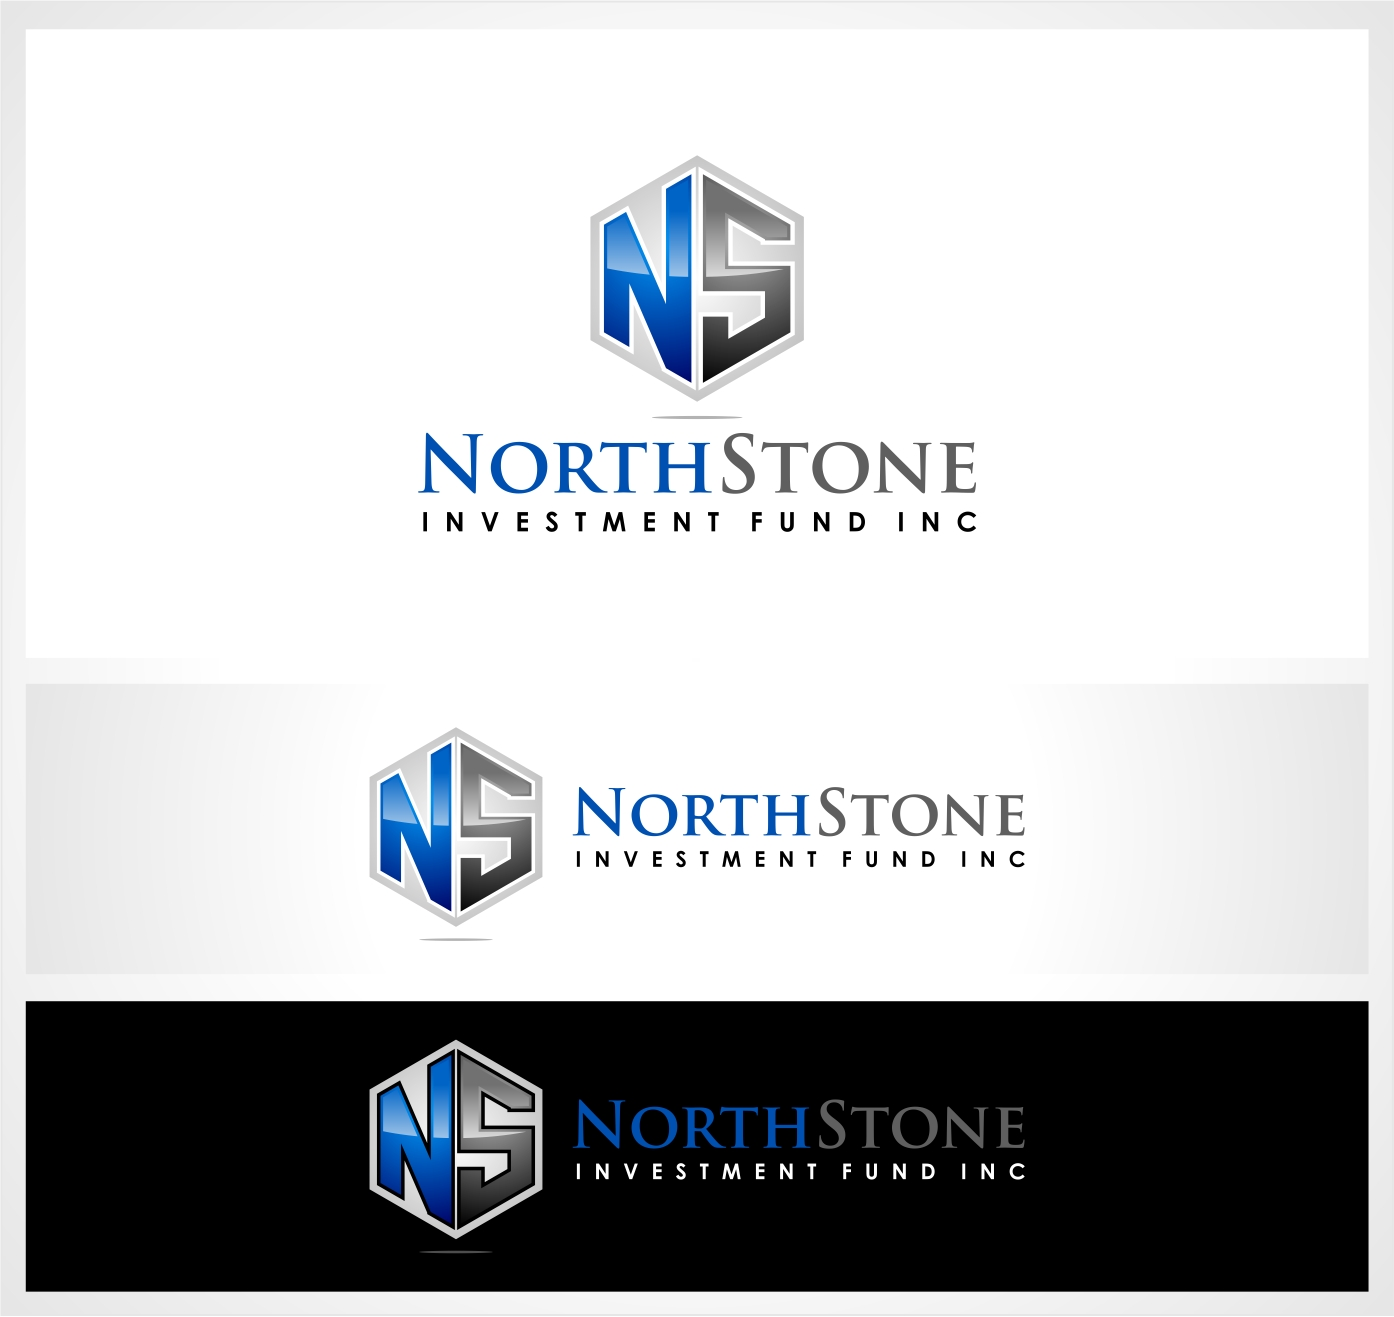 Logo Design by haidu - Entry No. 212 in the Logo Design Contest Unique Logo Design Wanted for NorthStone Investment Fund Inc.